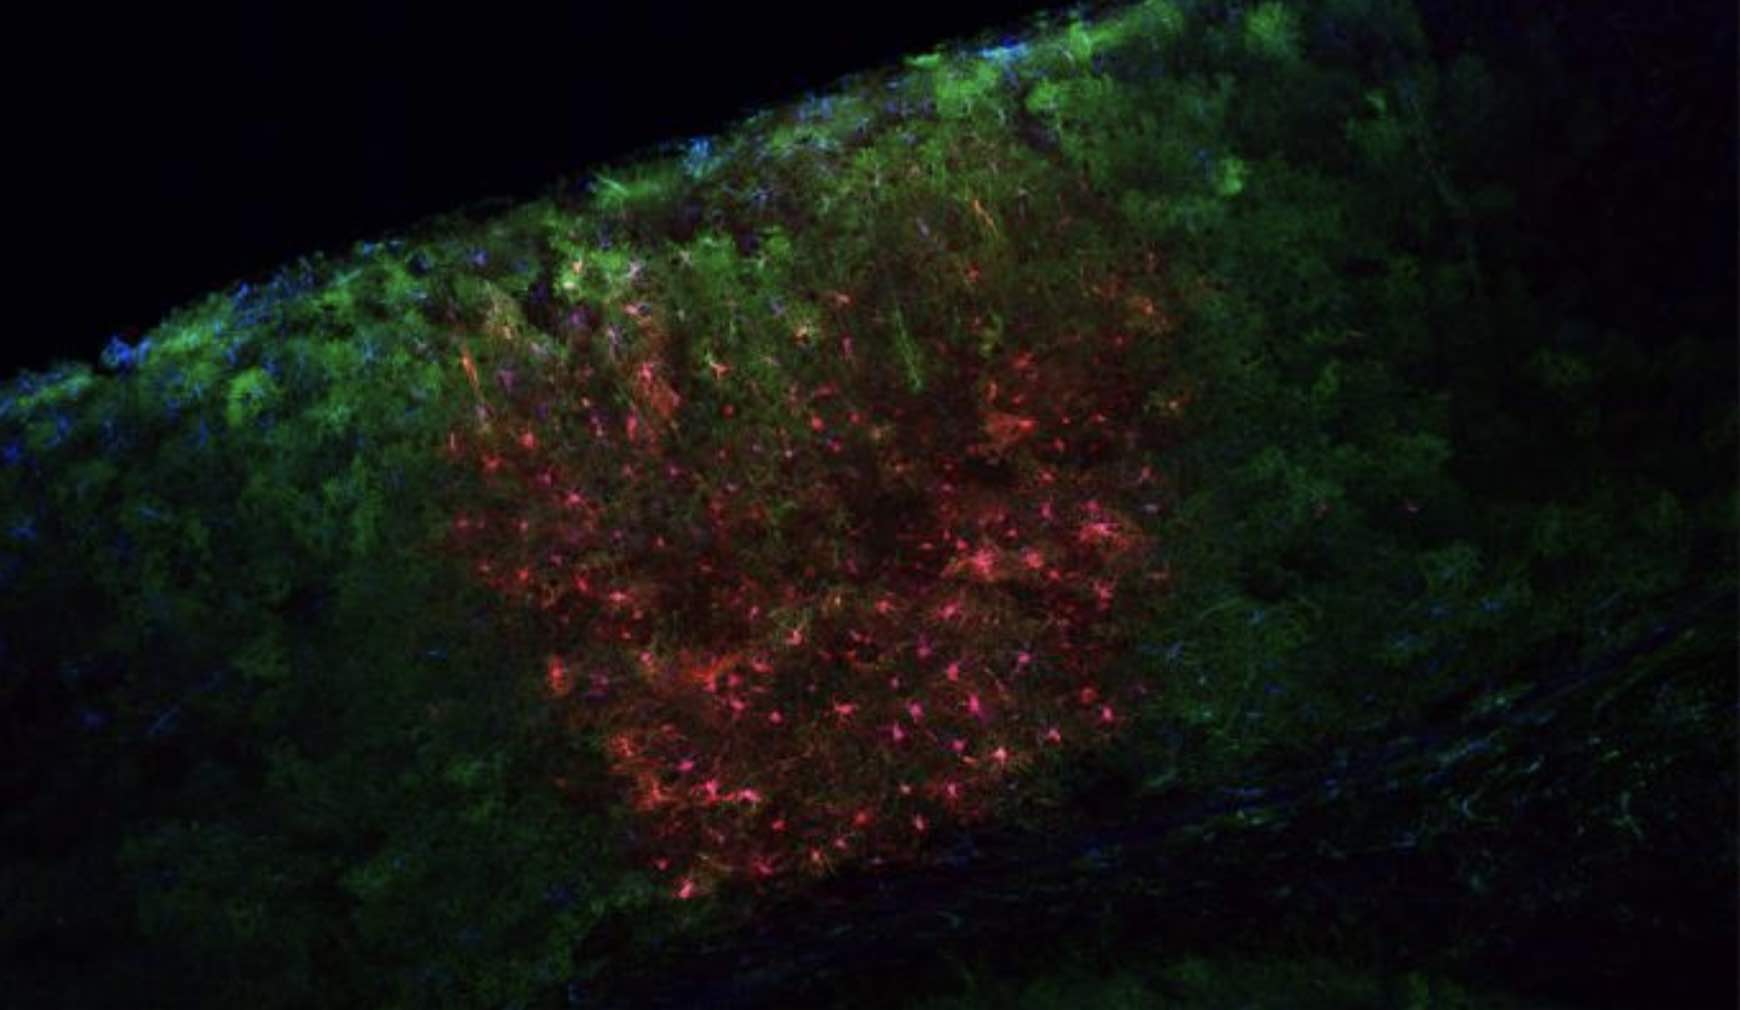 BRAIN grant will fund new tools to study astrocytes